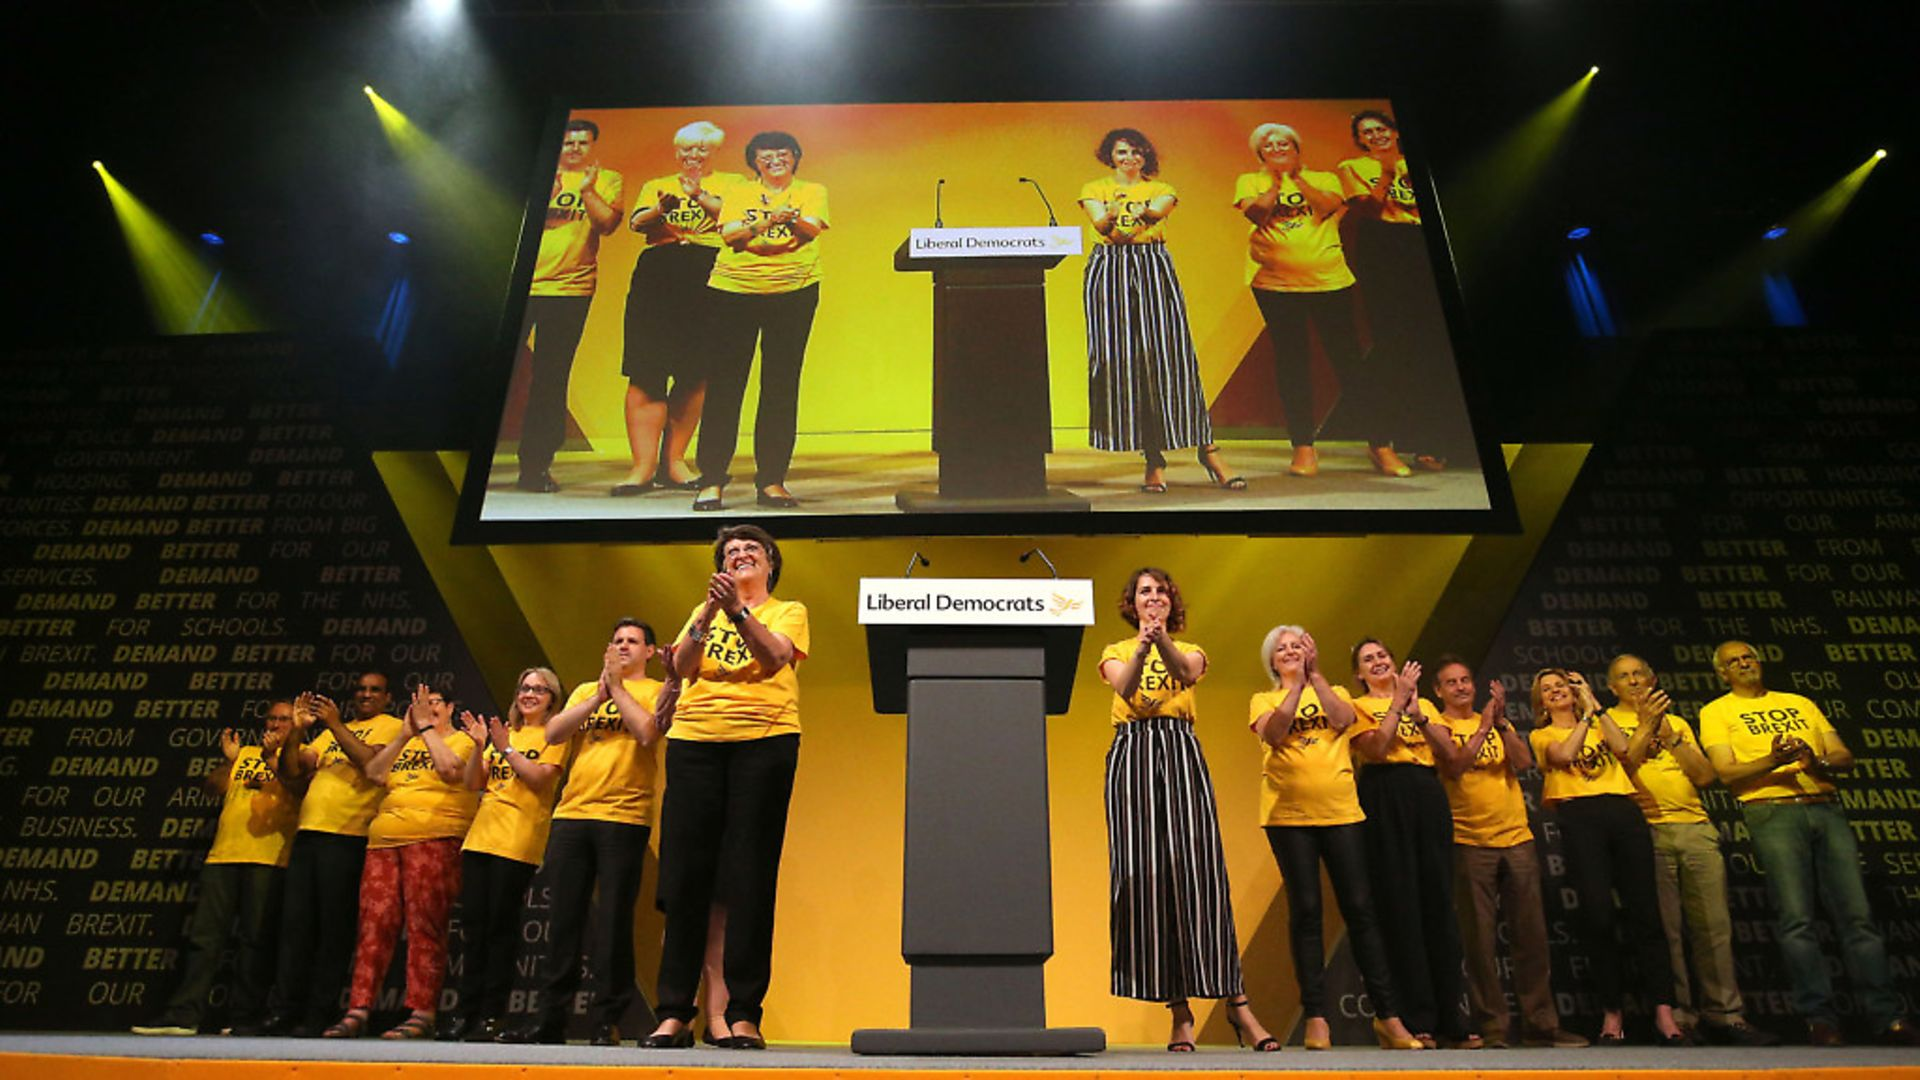 Lib Dem MEPs on stage at the Liberal Democrats conference. Photograph: Jonathan Brady/PA. - Credit: PA Wire/PA Images